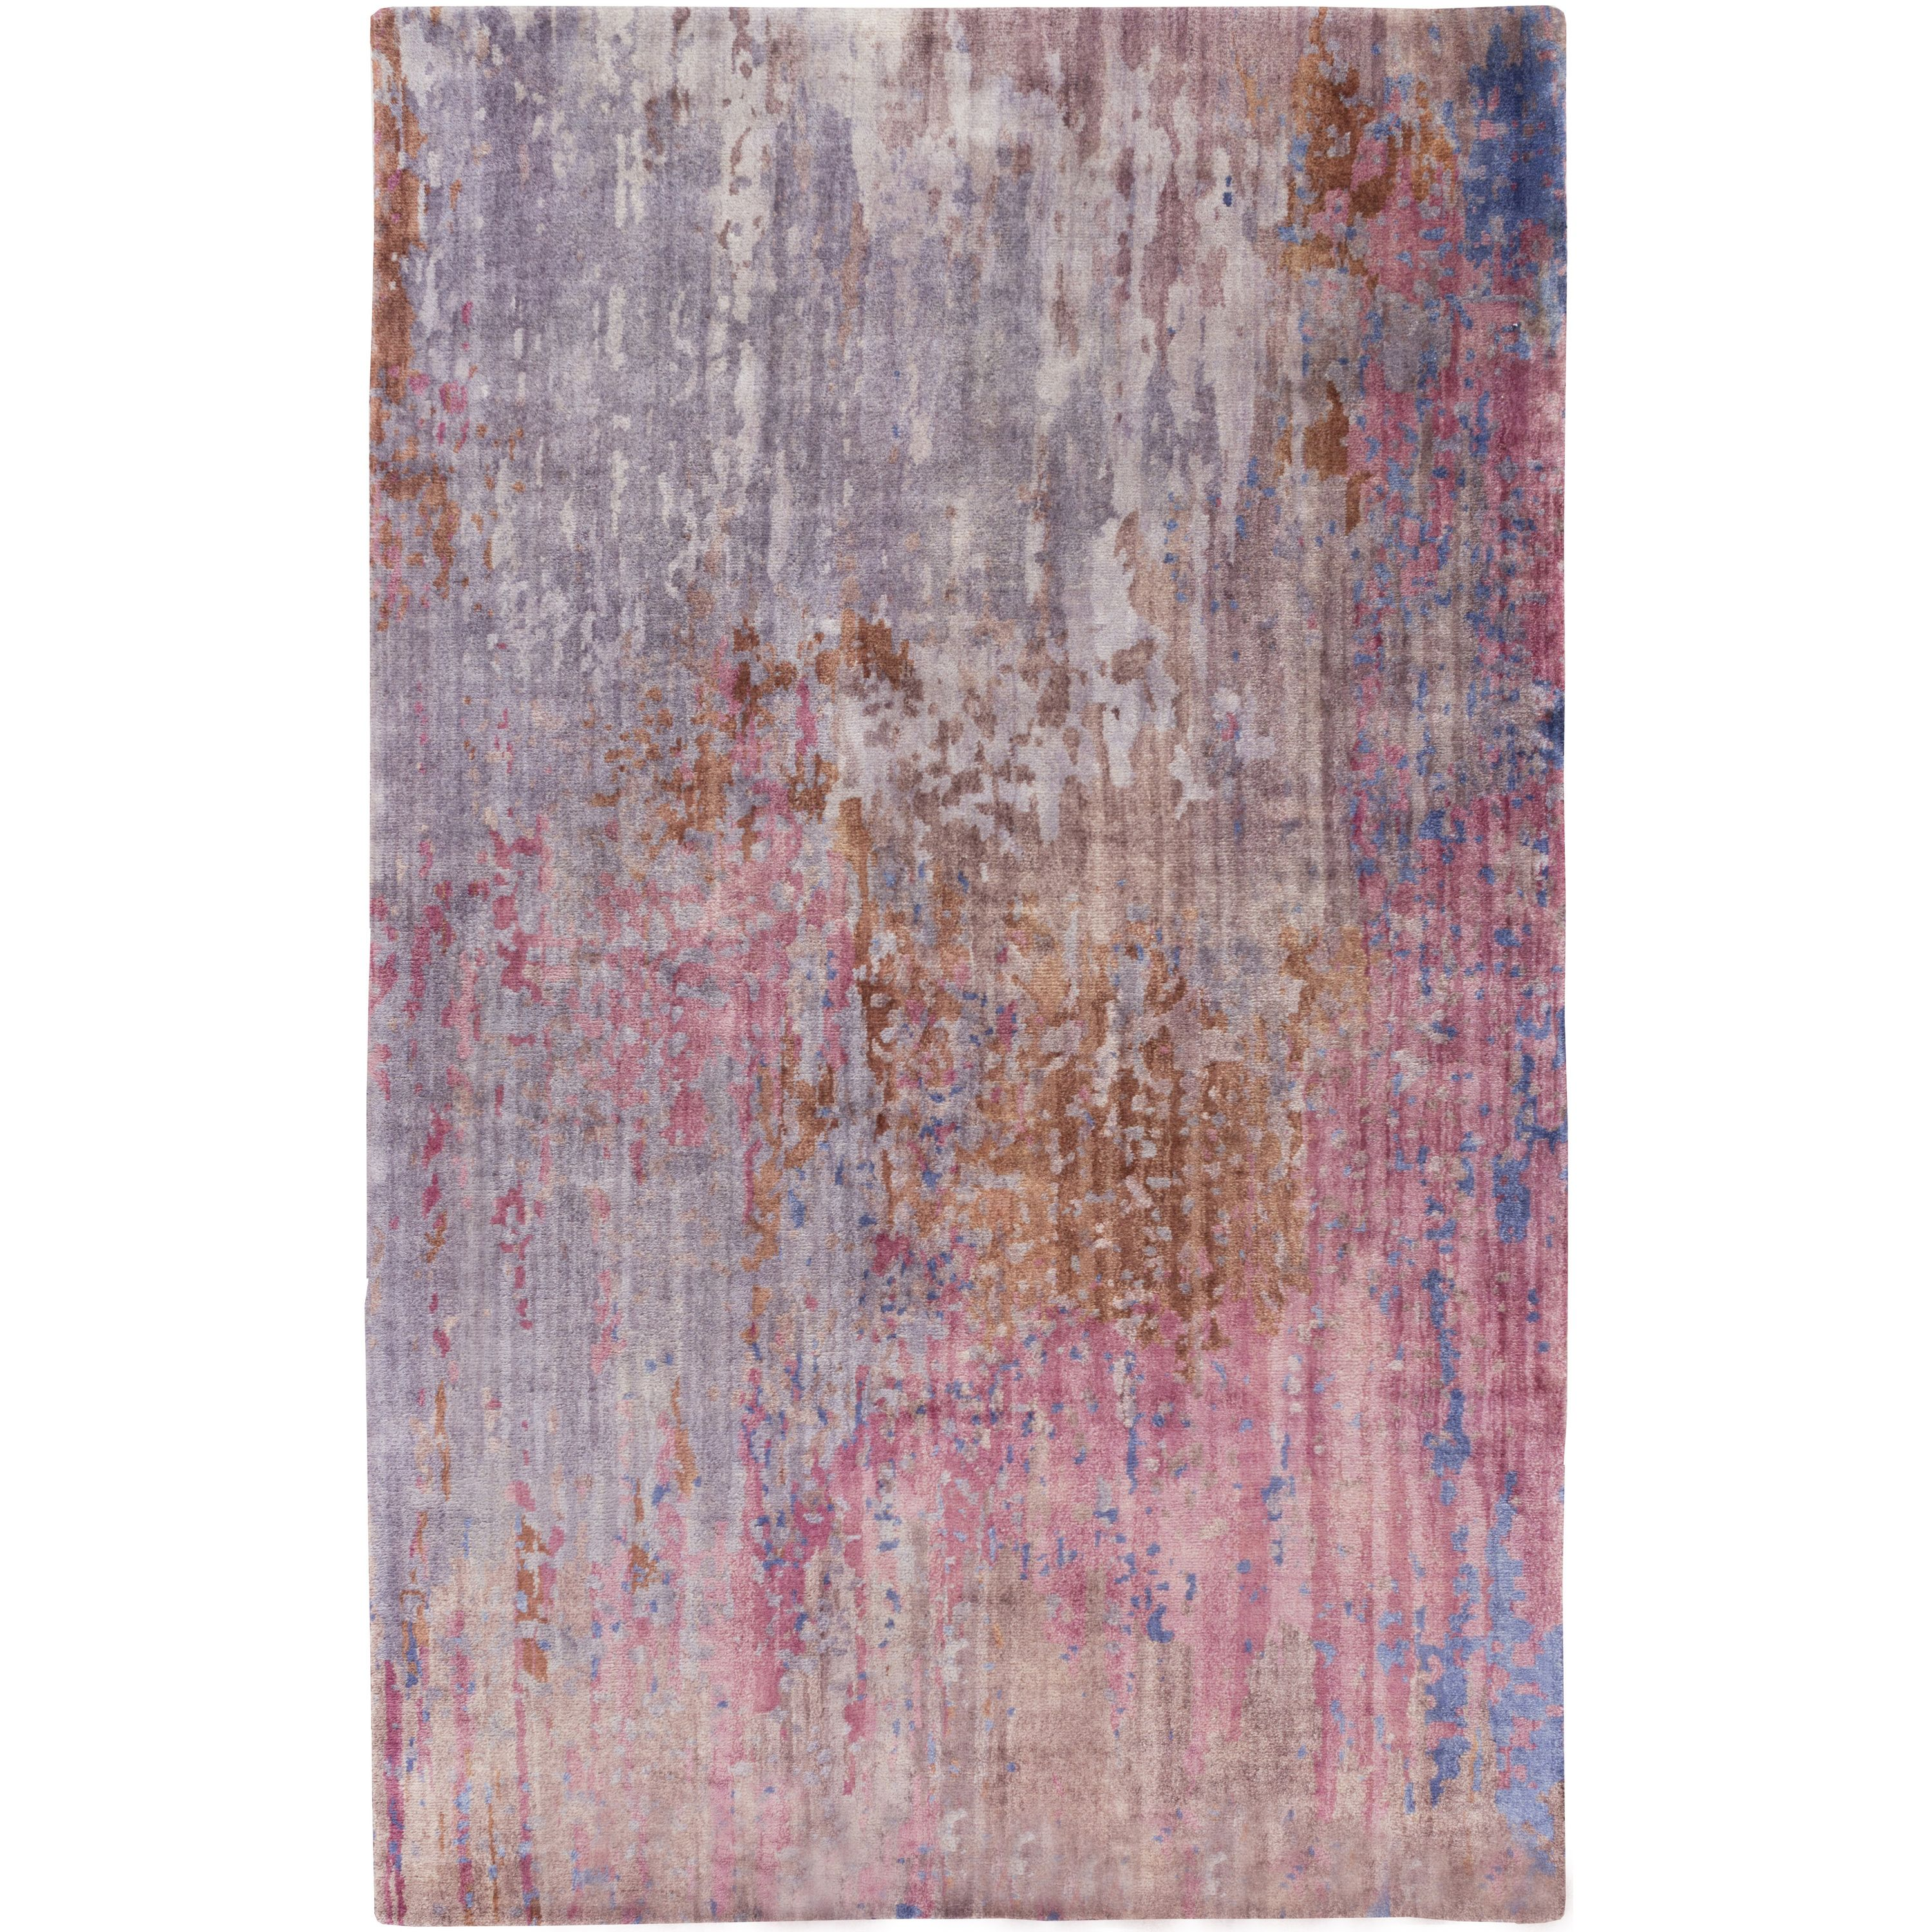 Surya Watercolor Wat5011 Grey Grey Modern Area Rug Modern Area